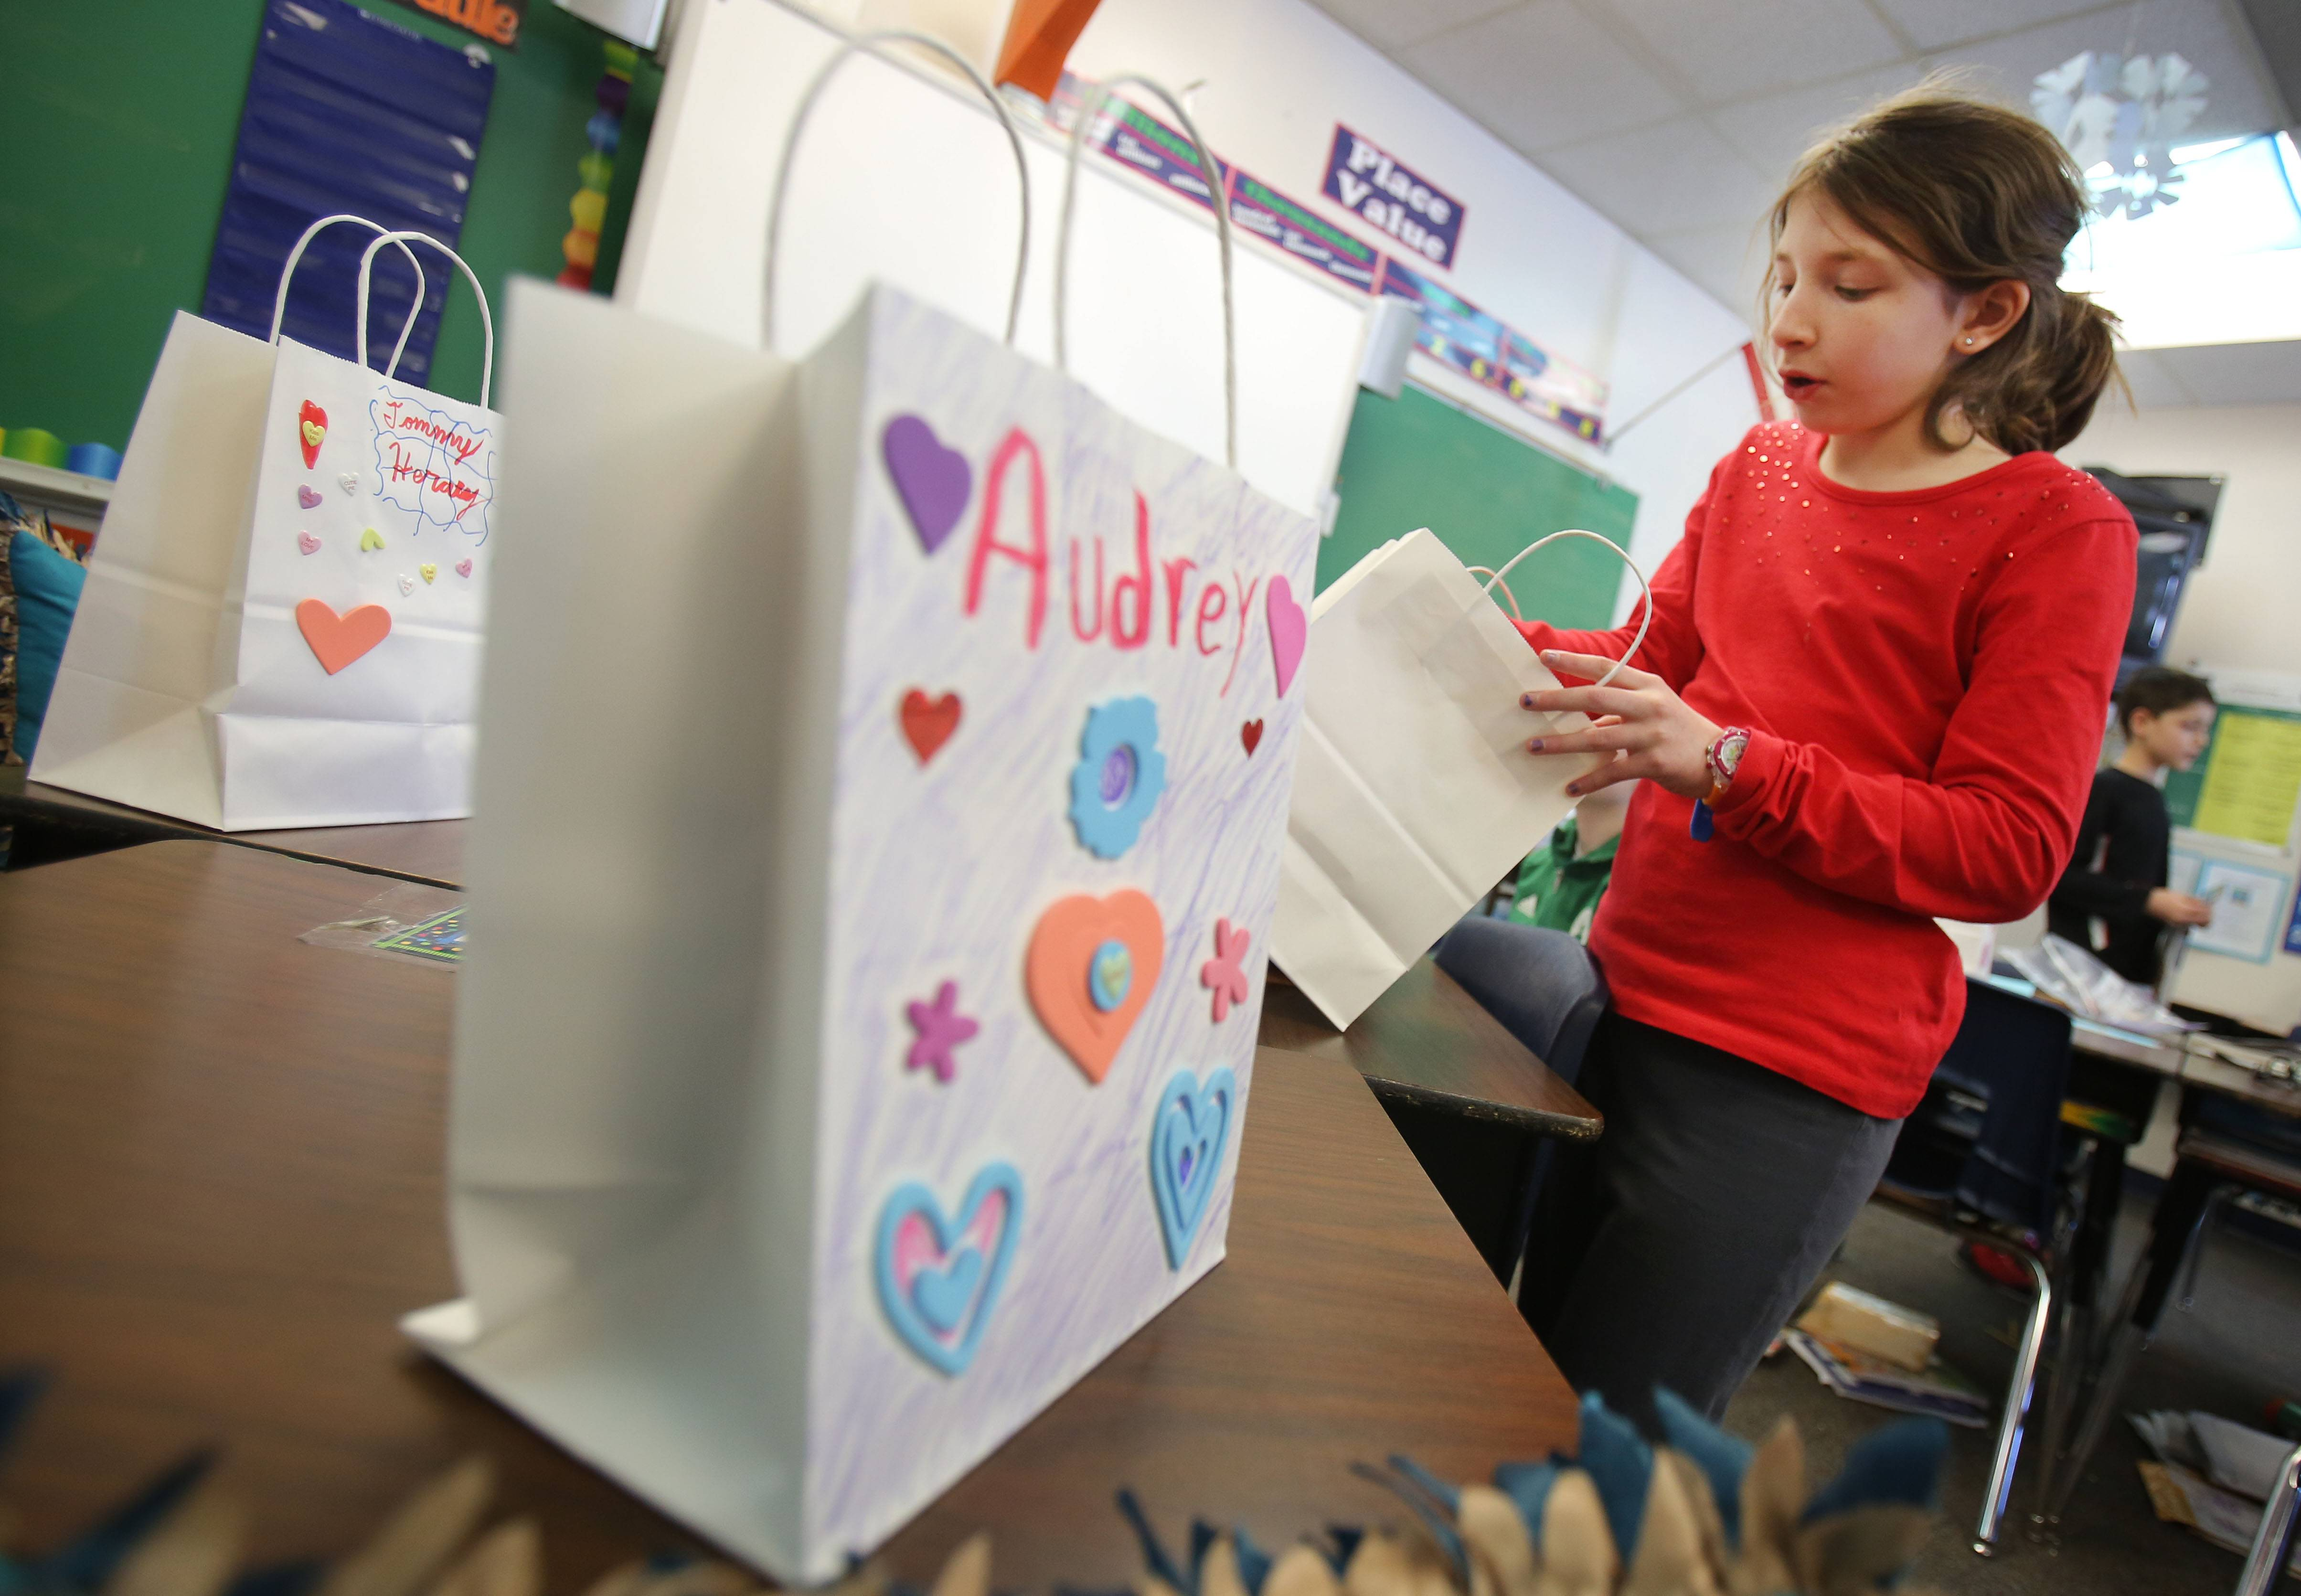 Forth-grader Megan Snow checks out the valentines she got from classmates during a Valentine's Day party at Butterfield School in Libertyville Thursday.